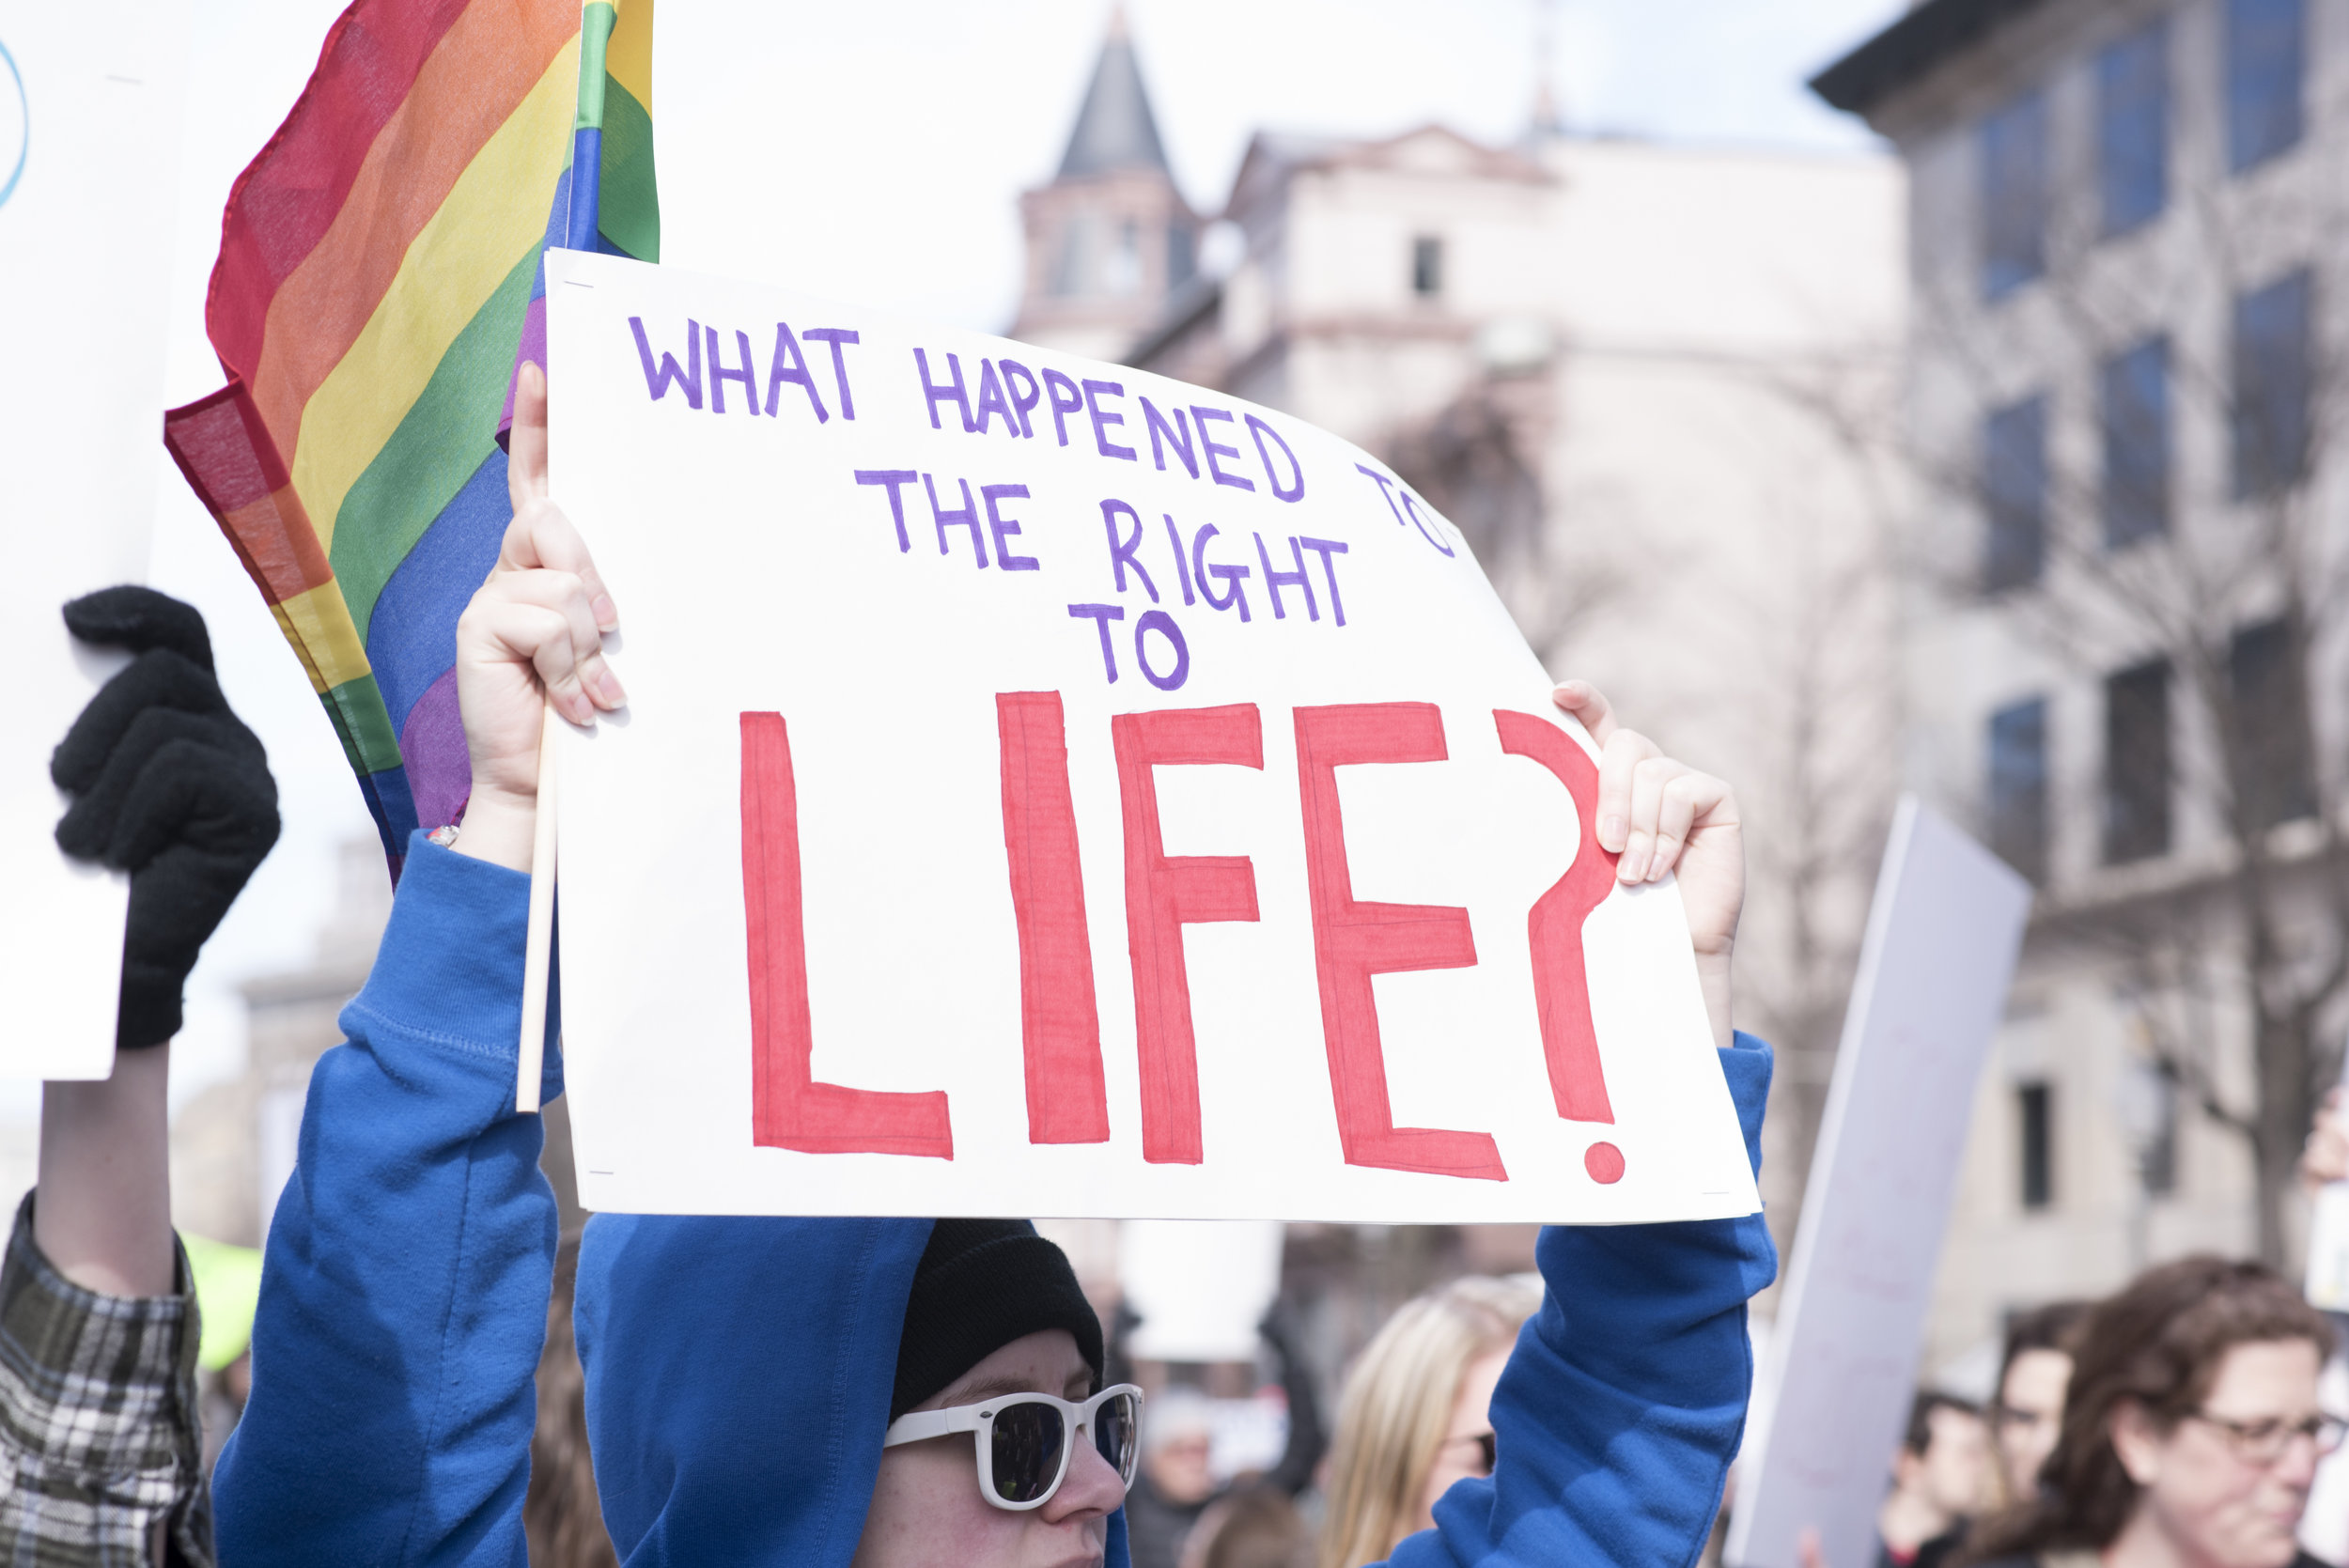 """March for Our Lives, Washington, DC: March 24, 2018. Student holding sign, """"What happened to the right to life?"""""""